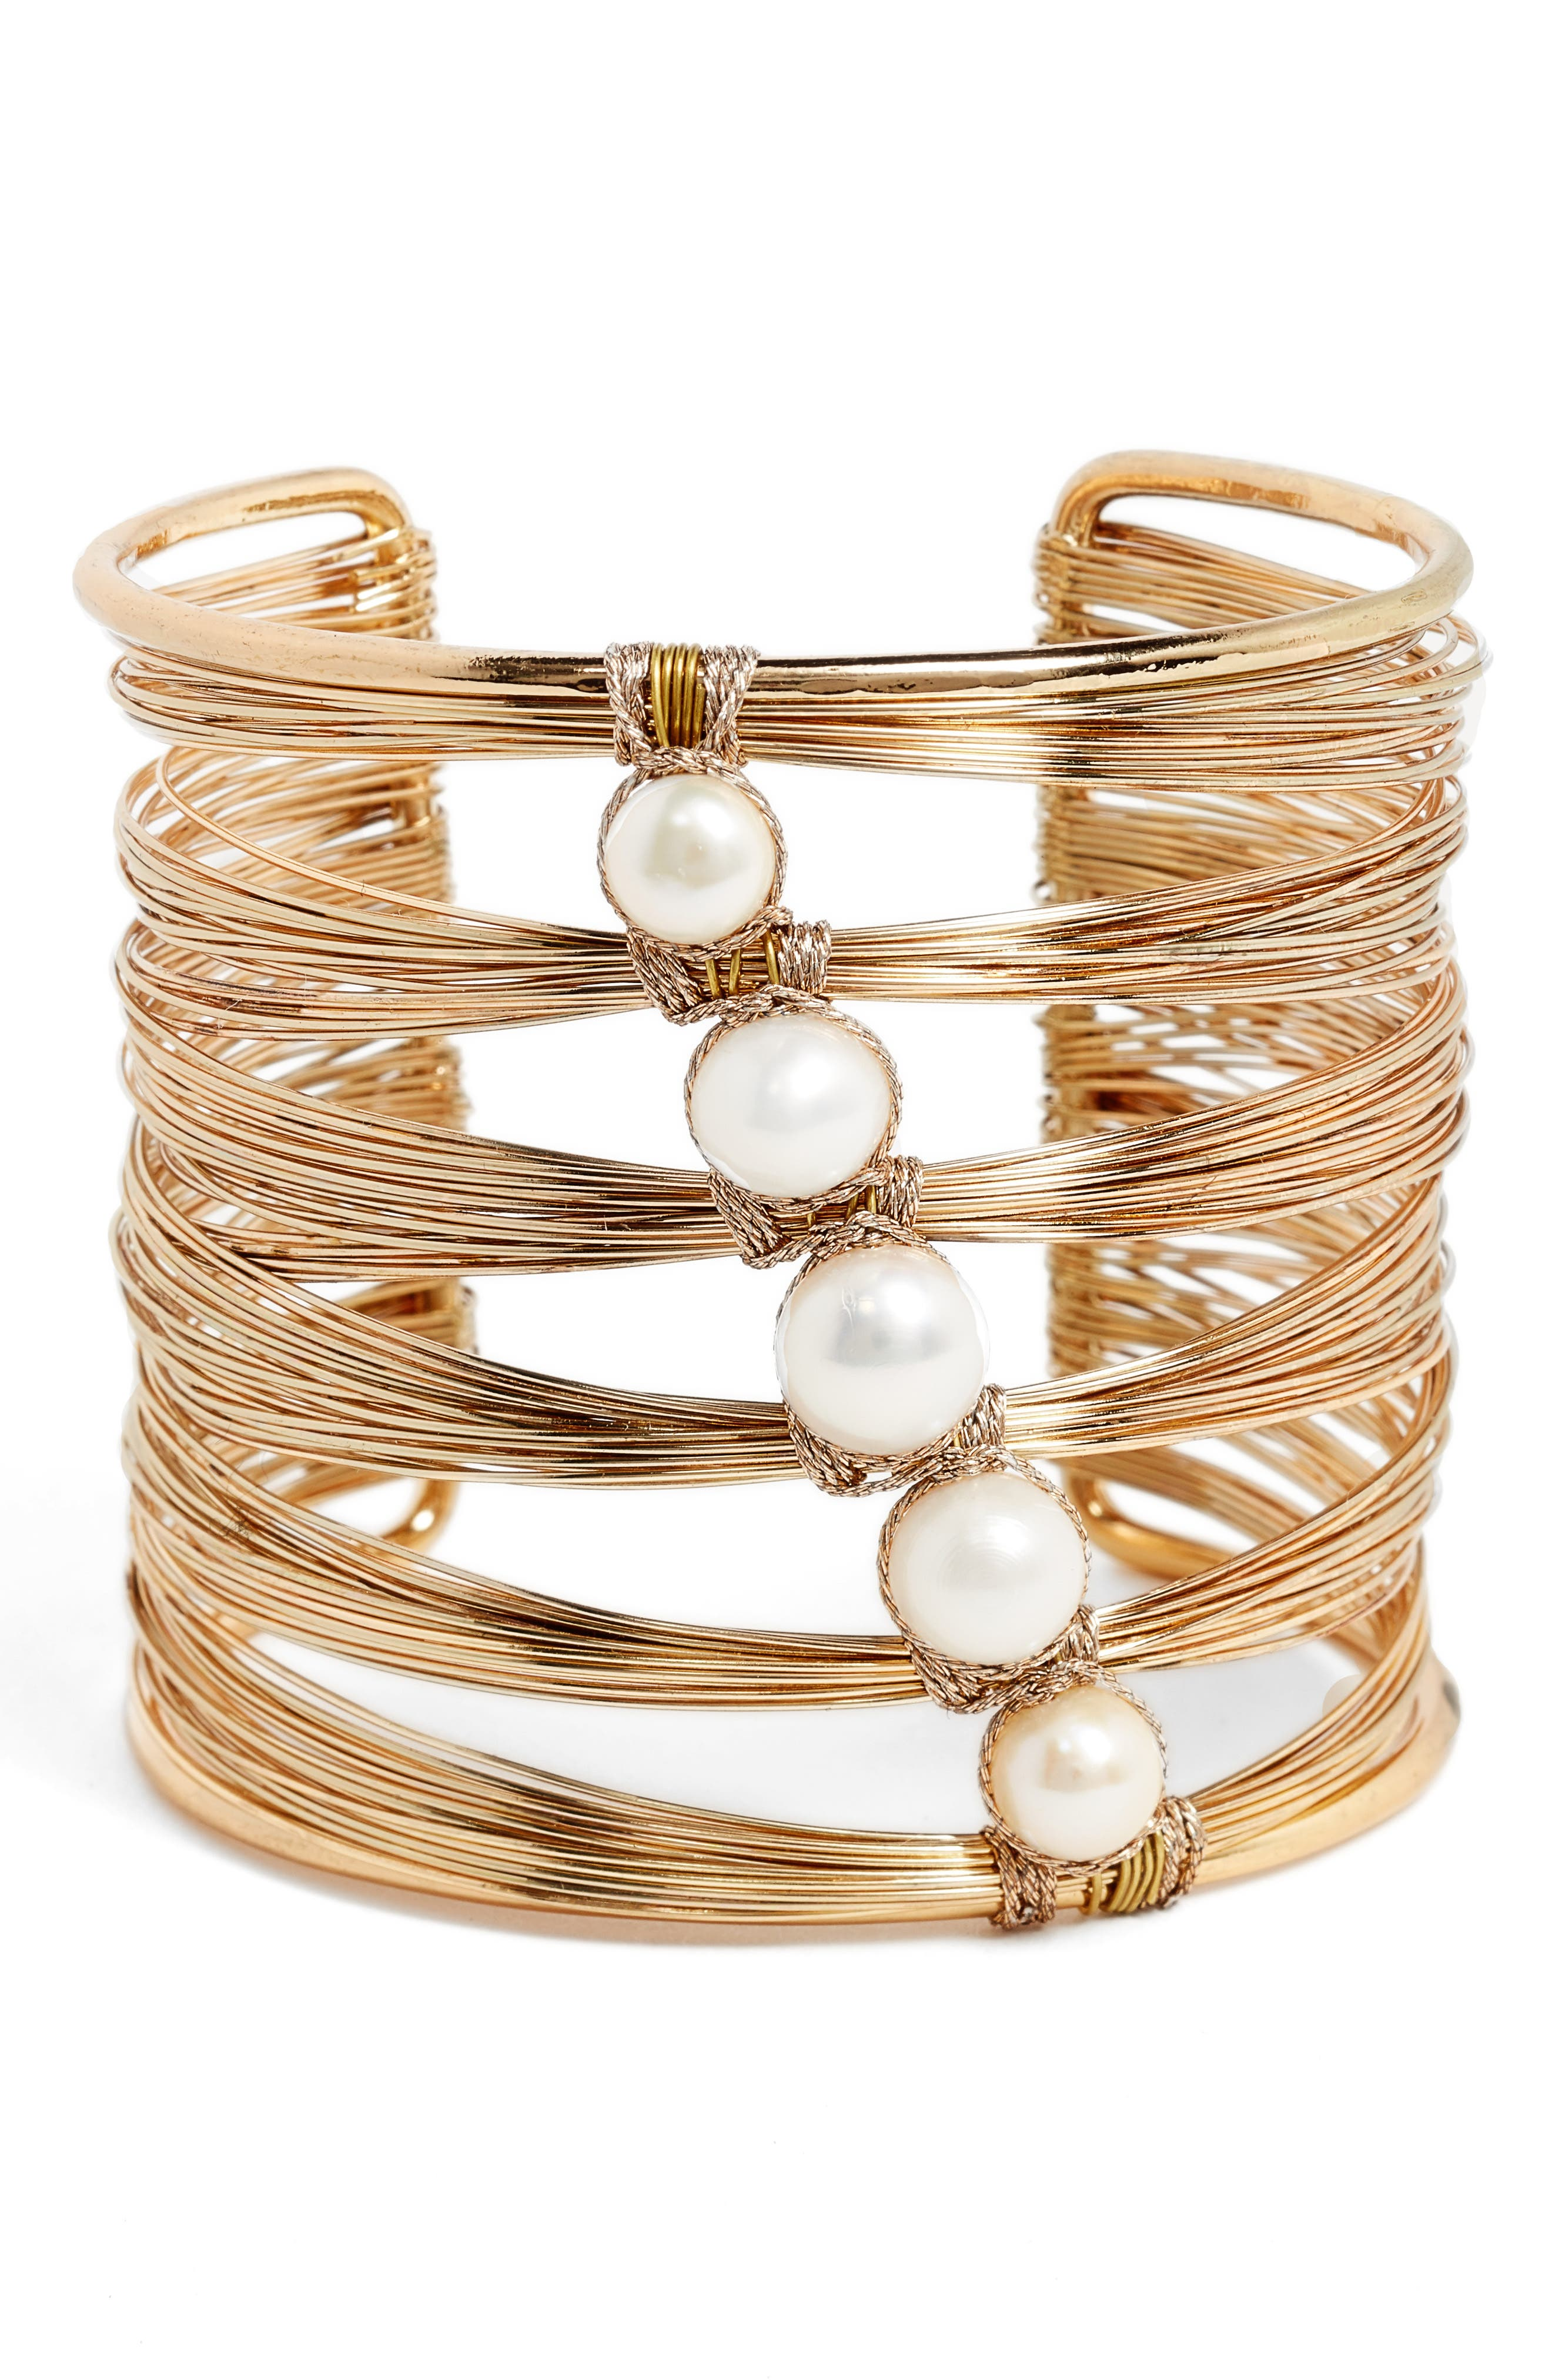 Freshwater Pearl Wire Cuff,                         Main,                         color, Gold